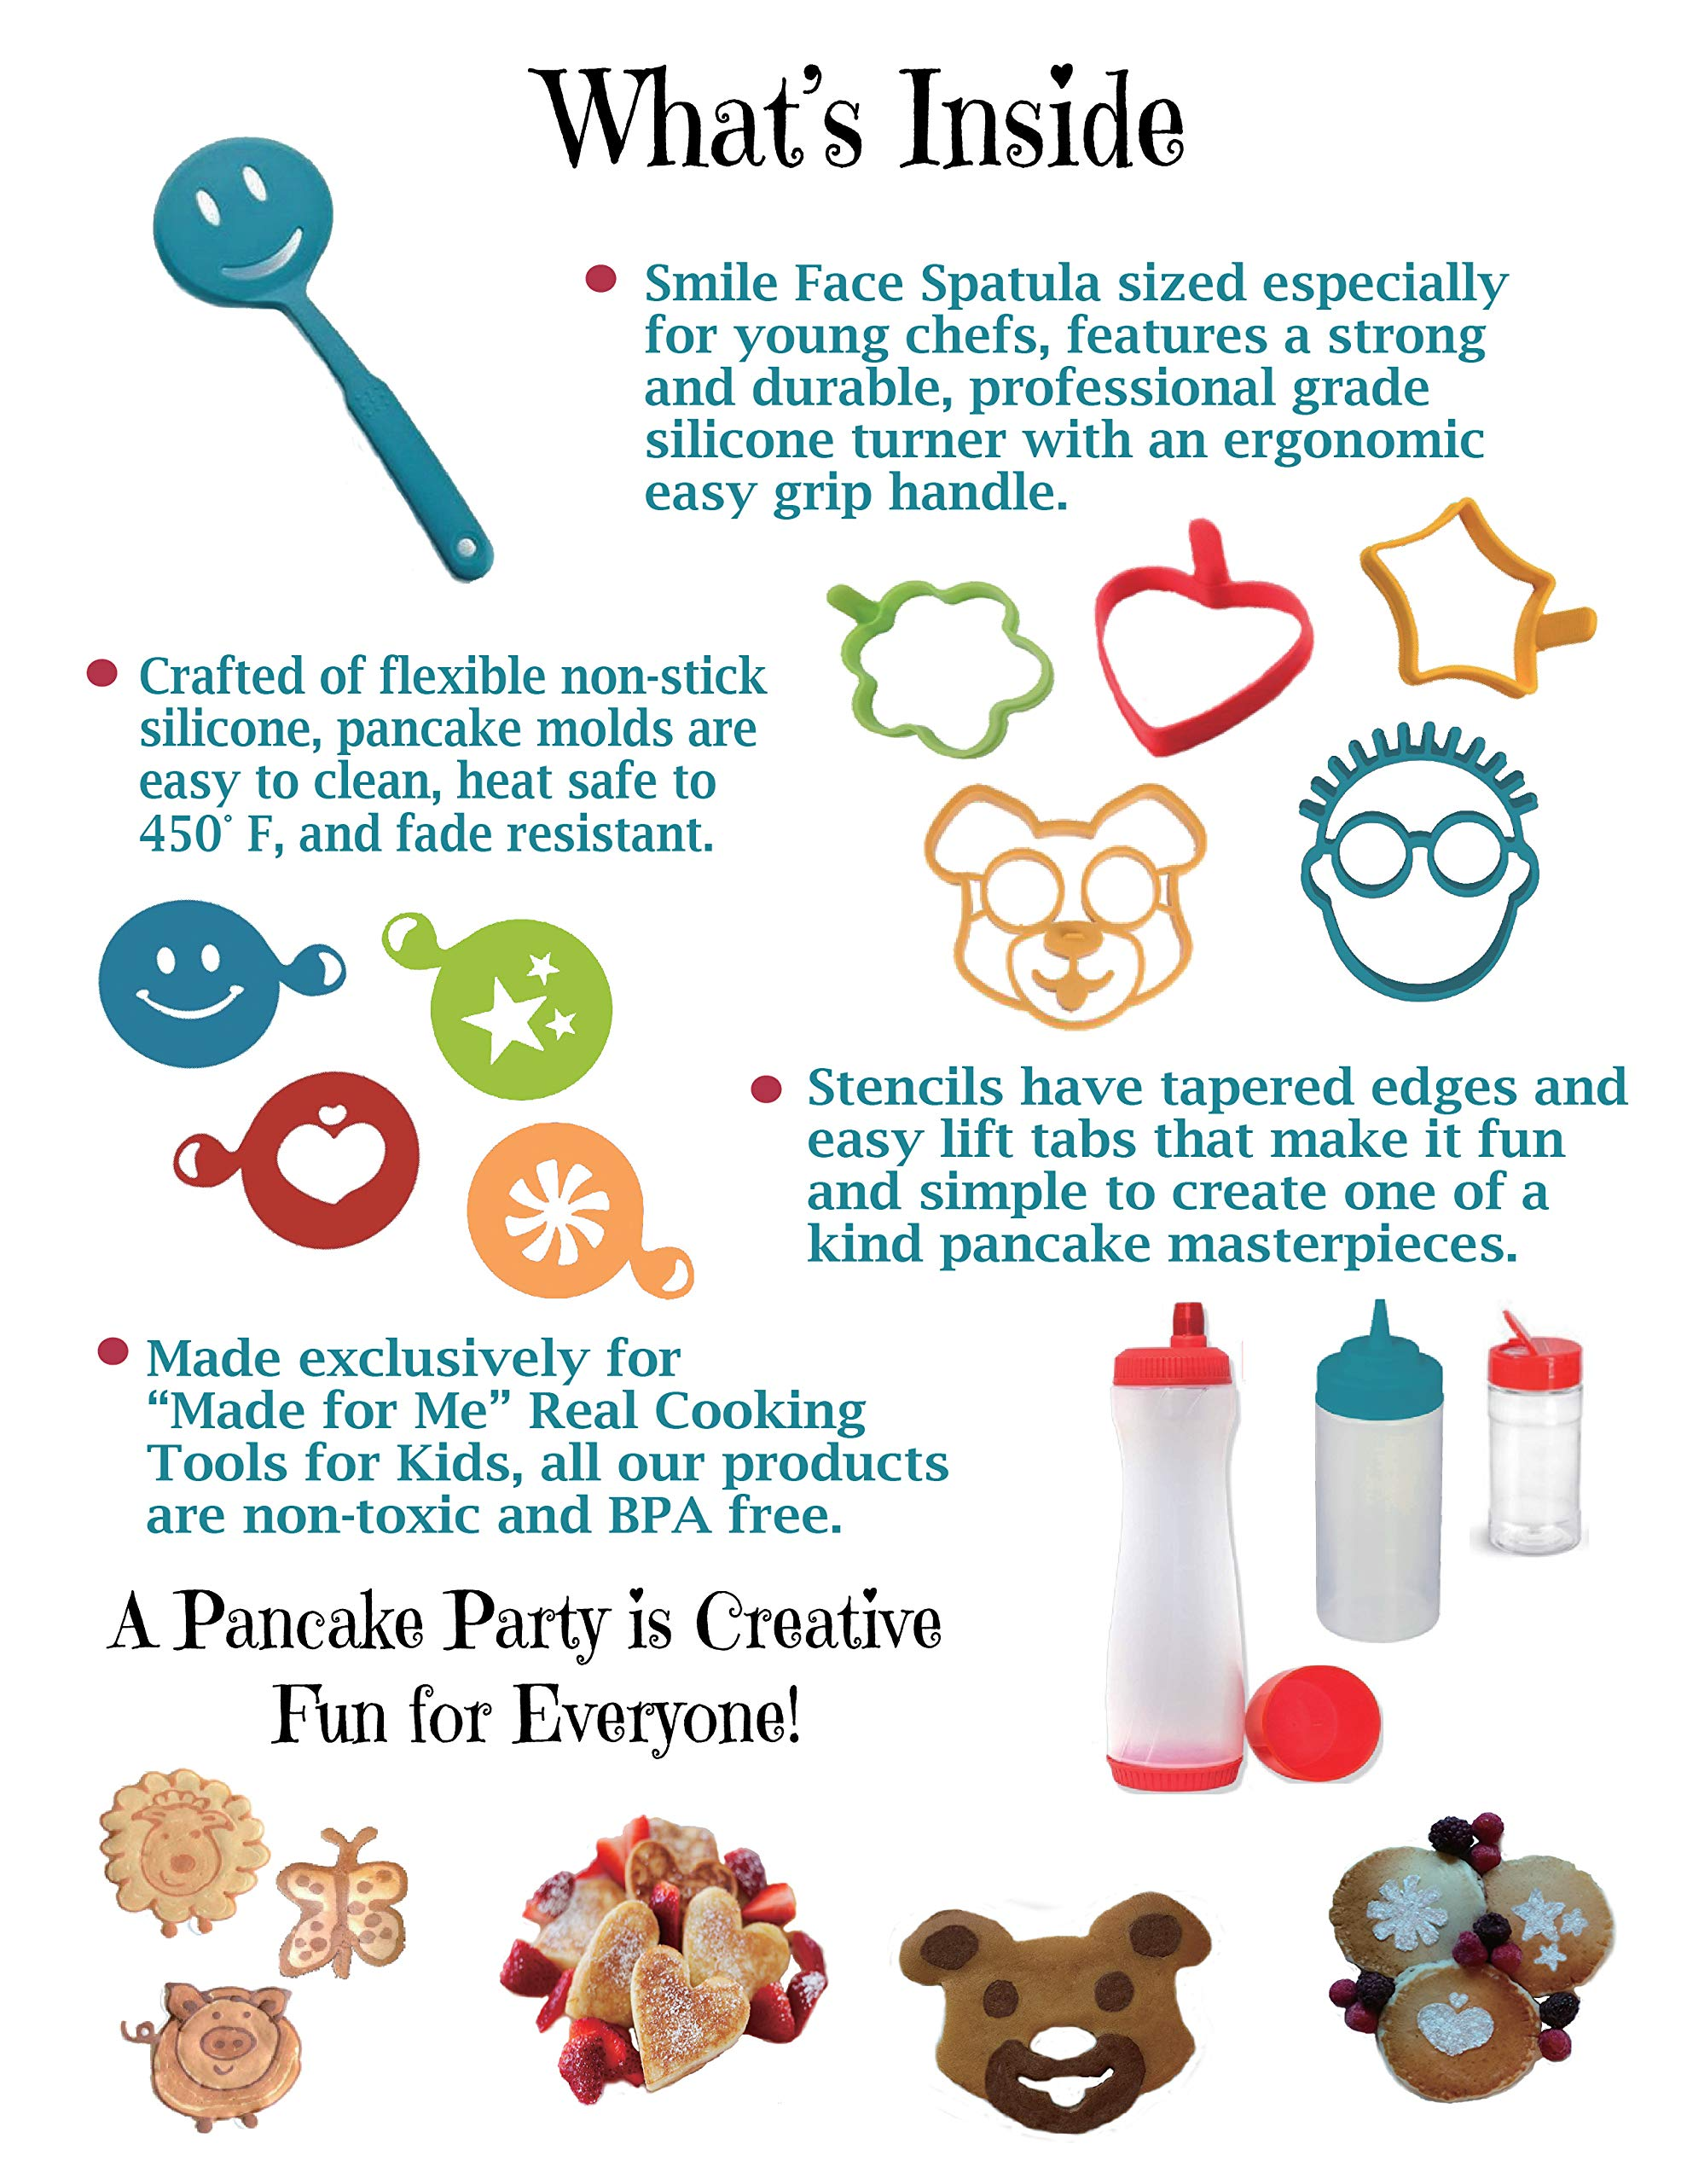 Pancake Party! The Ultimate Pancake Art Making Set for Kids - SUMMER SALE! / REG $35.95 Excellent culinary educational gift for children, young bakers, chefs! baking, cooking kit for boys and girls! by Made for Me (Image #3)